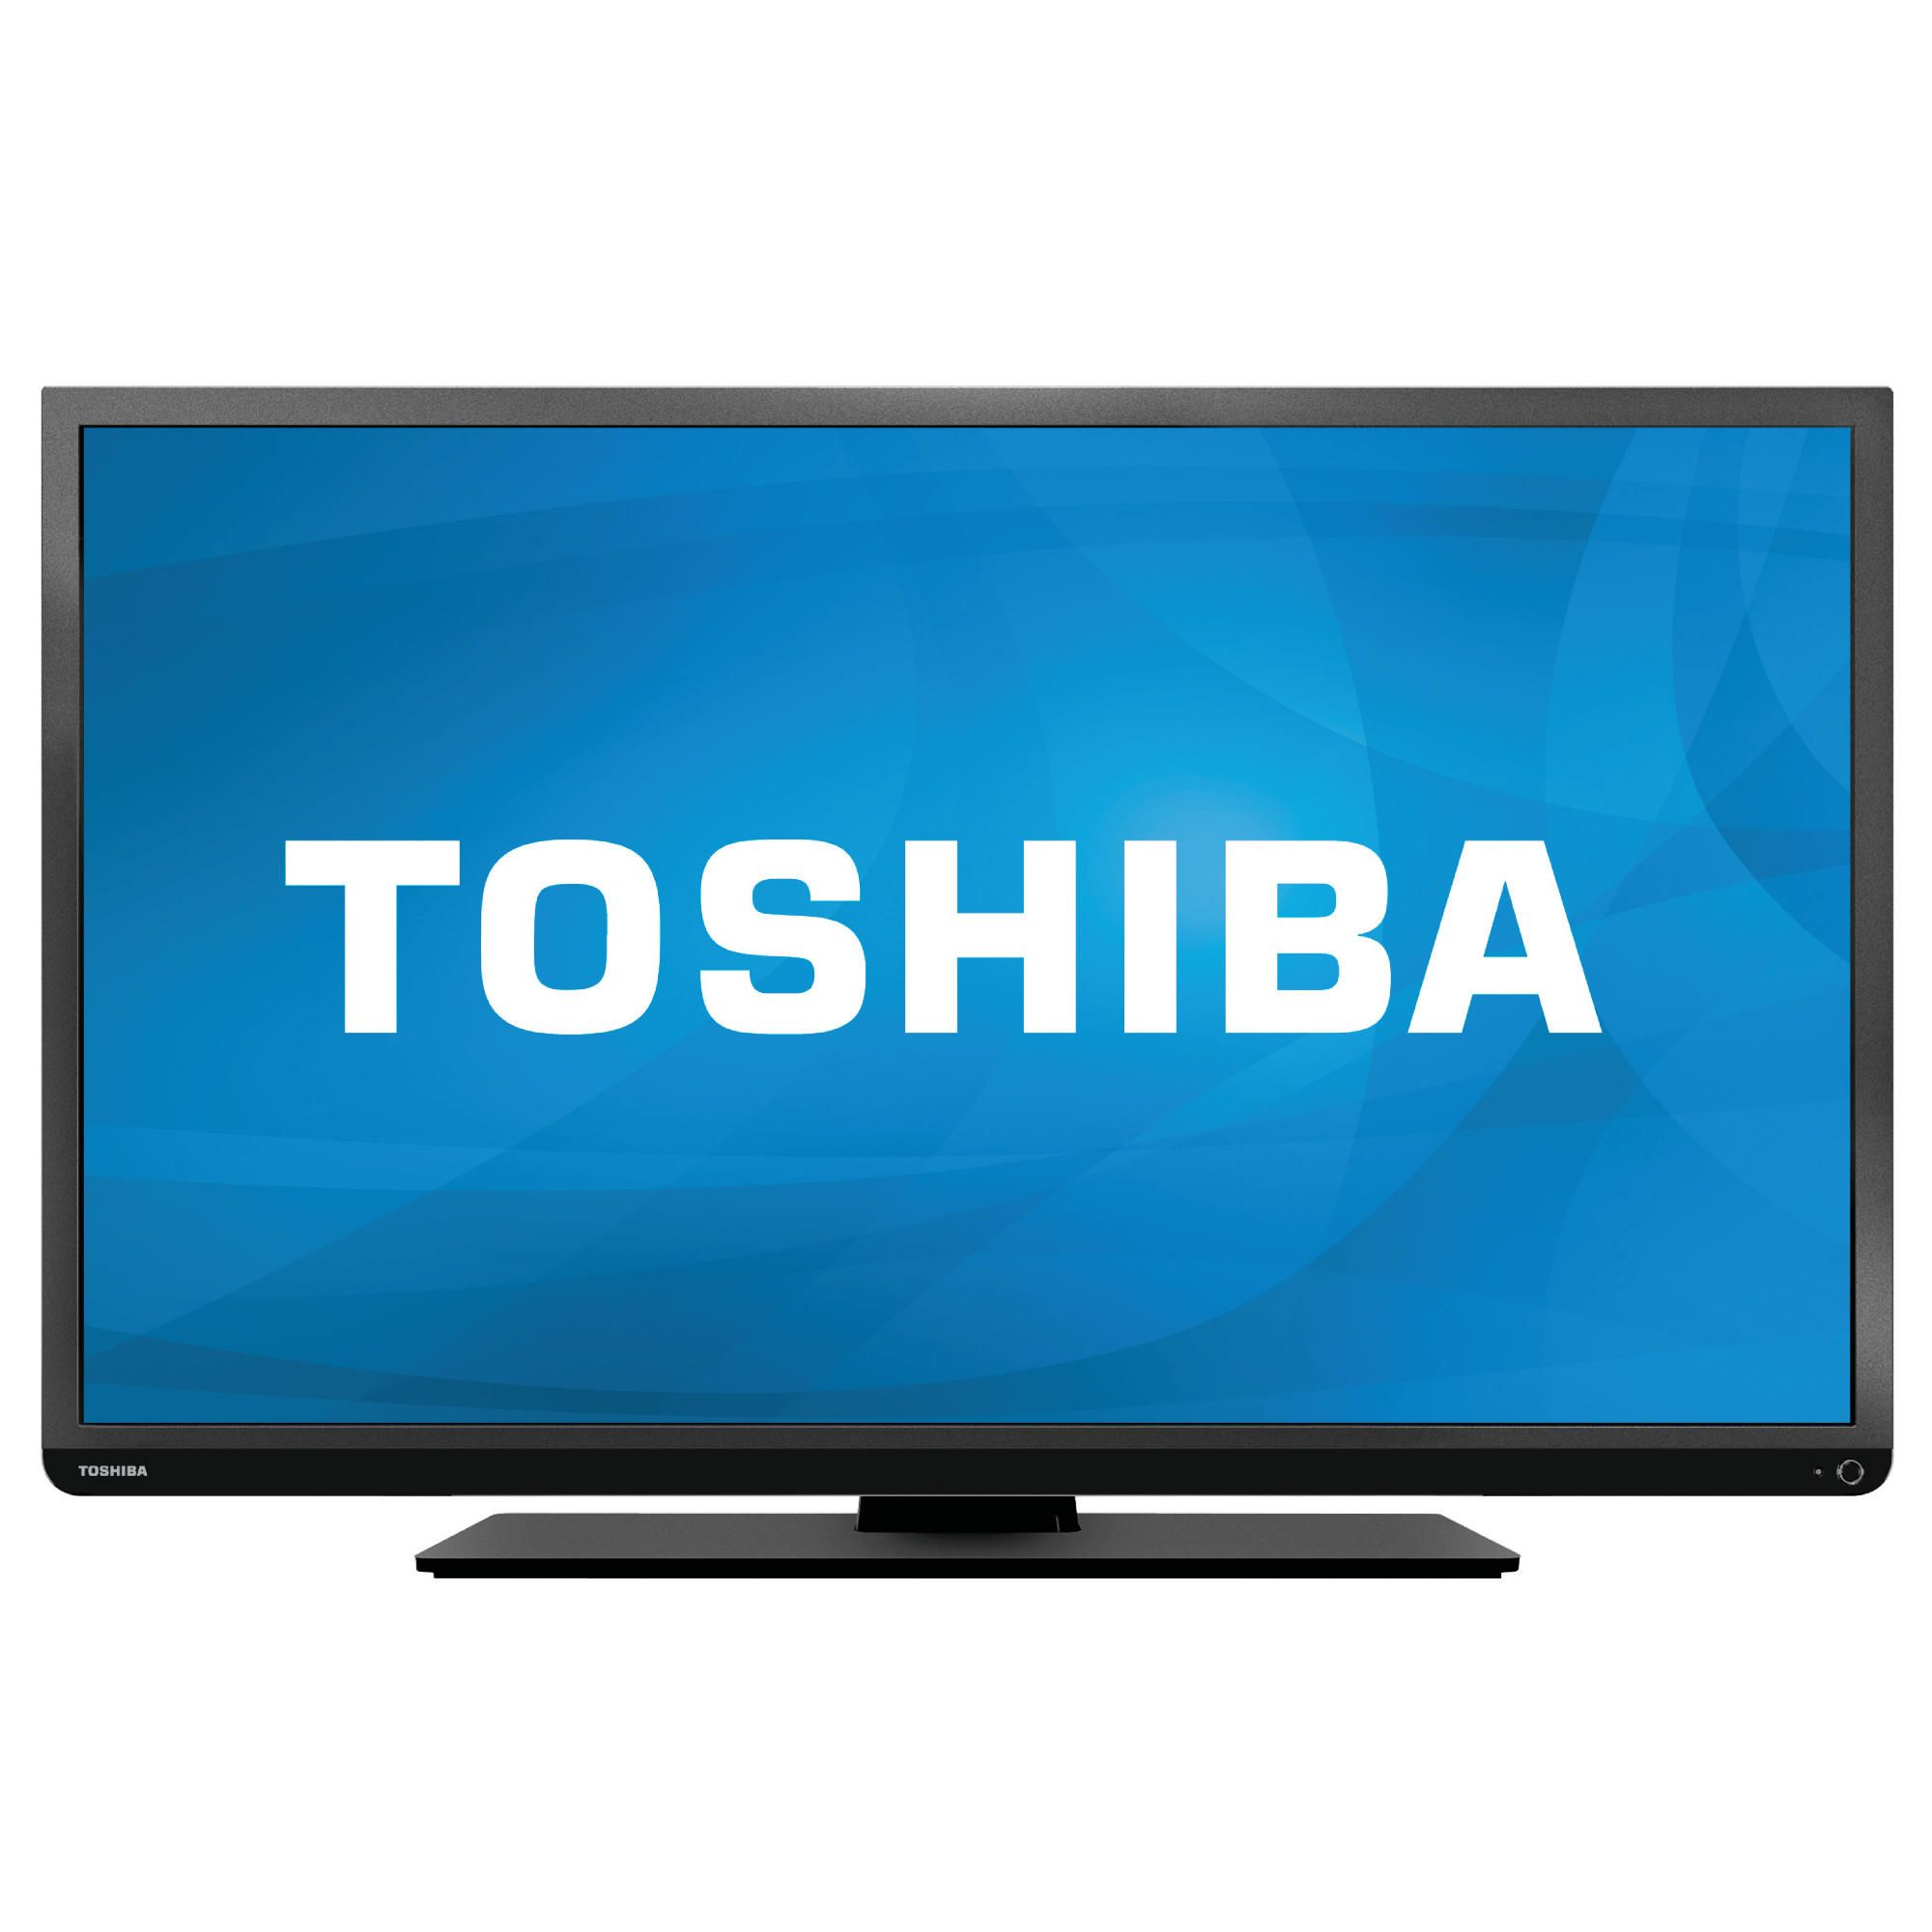 electronics televisions toshiba 40l1353b 40 inch full hd 1080p led backlit tv with freeview. Black Bedroom Furniture Sets. Home Design Ideas